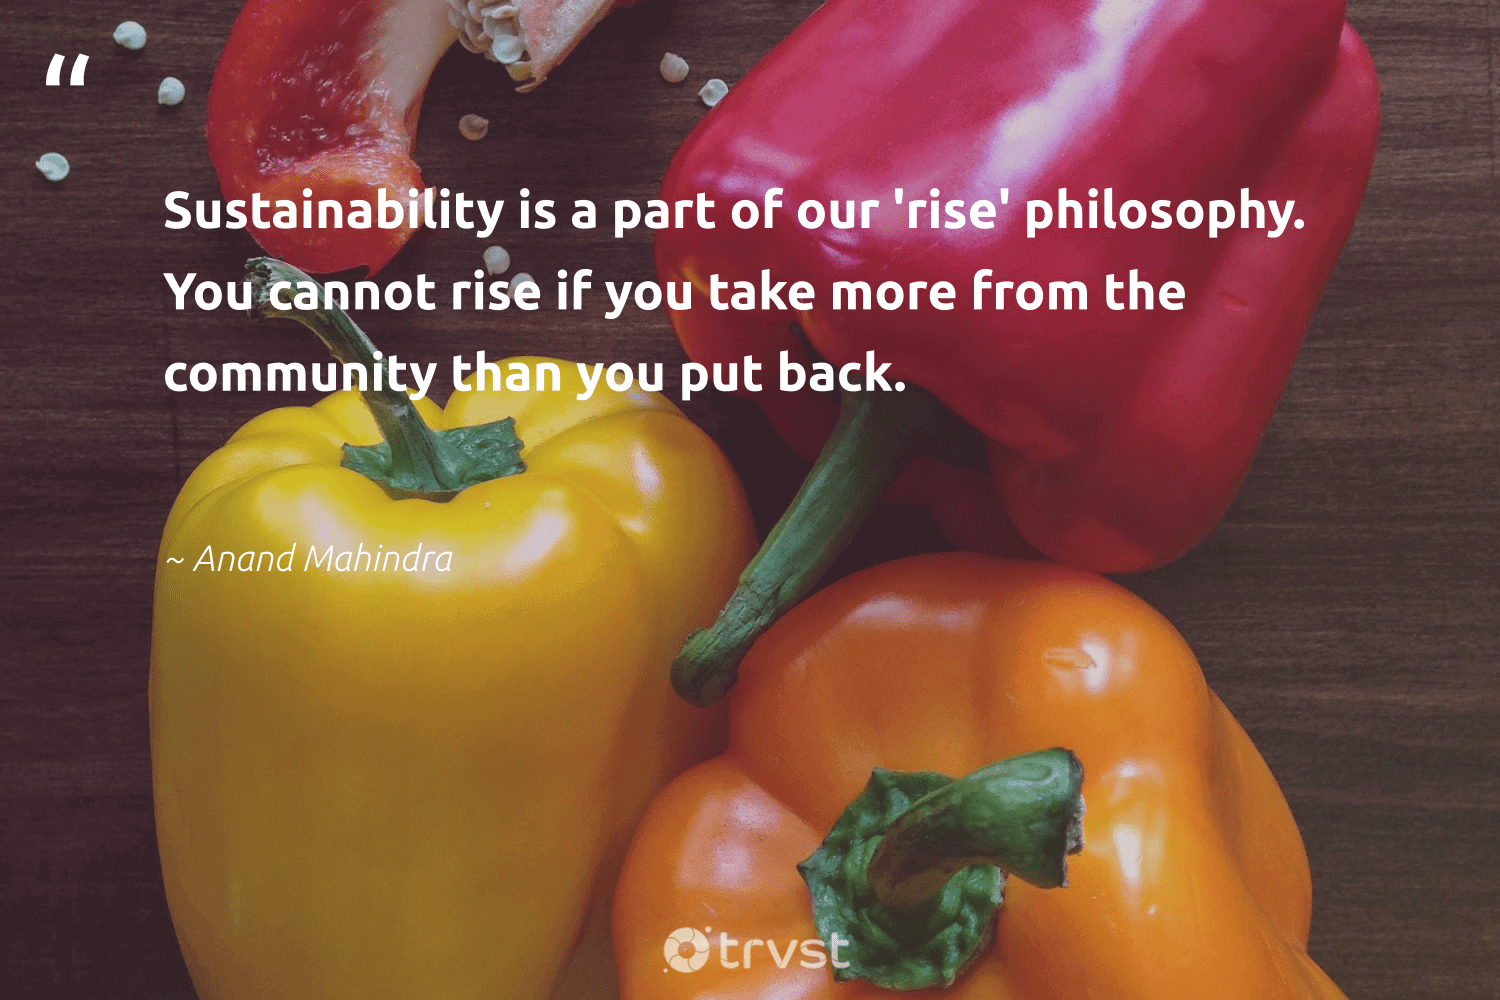 """""""Sustainability is a part of our 'rise' philosophy. You cannot rise if you take more from the community than you put back.""""  - Anand Mahindra #trvst #quotes #sustainability #ecofriendly #bethechange #green #dotherightthing #sustainable #greenliving #gogreen #dosomething #sustainableliving"""